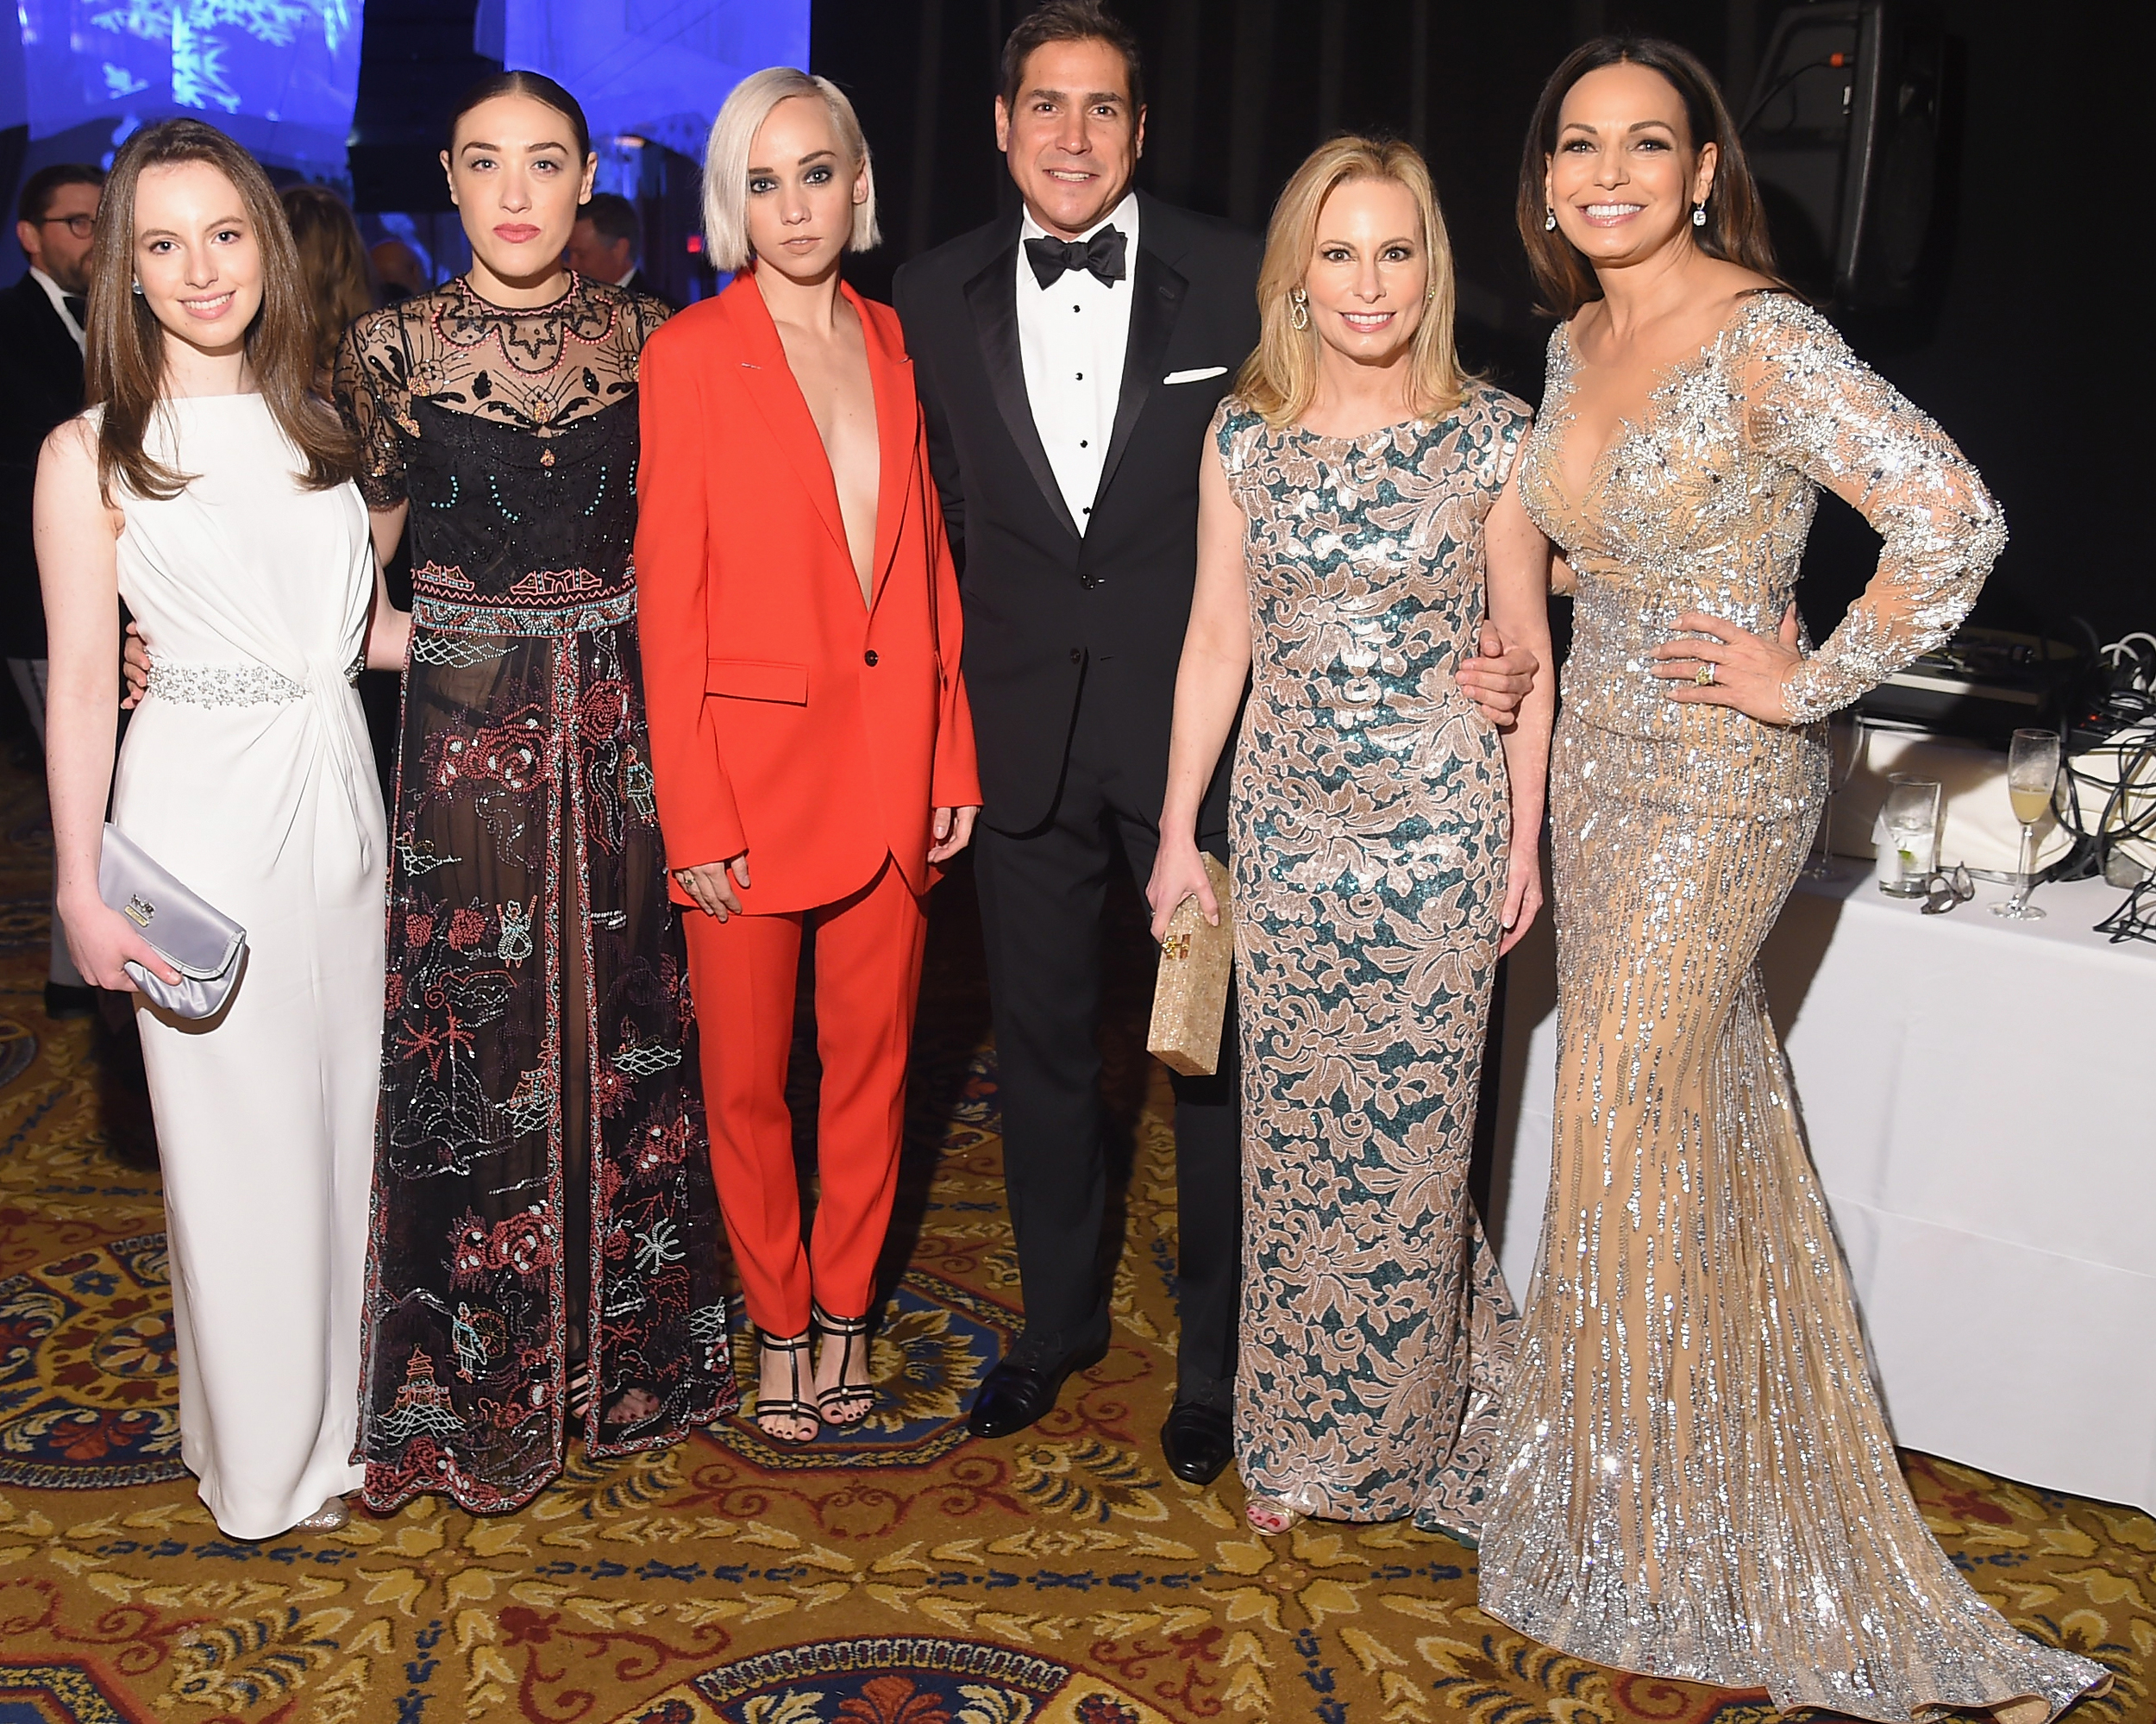 Serena Miniter, Mia Moretti & Caitlin Moe of The Dolls, Jaime Jimenez, and Gala Co-Chairs Gillian Miniter and Moll Anderson ©2015 Michael Loccisano/Getty Images for UNICEF